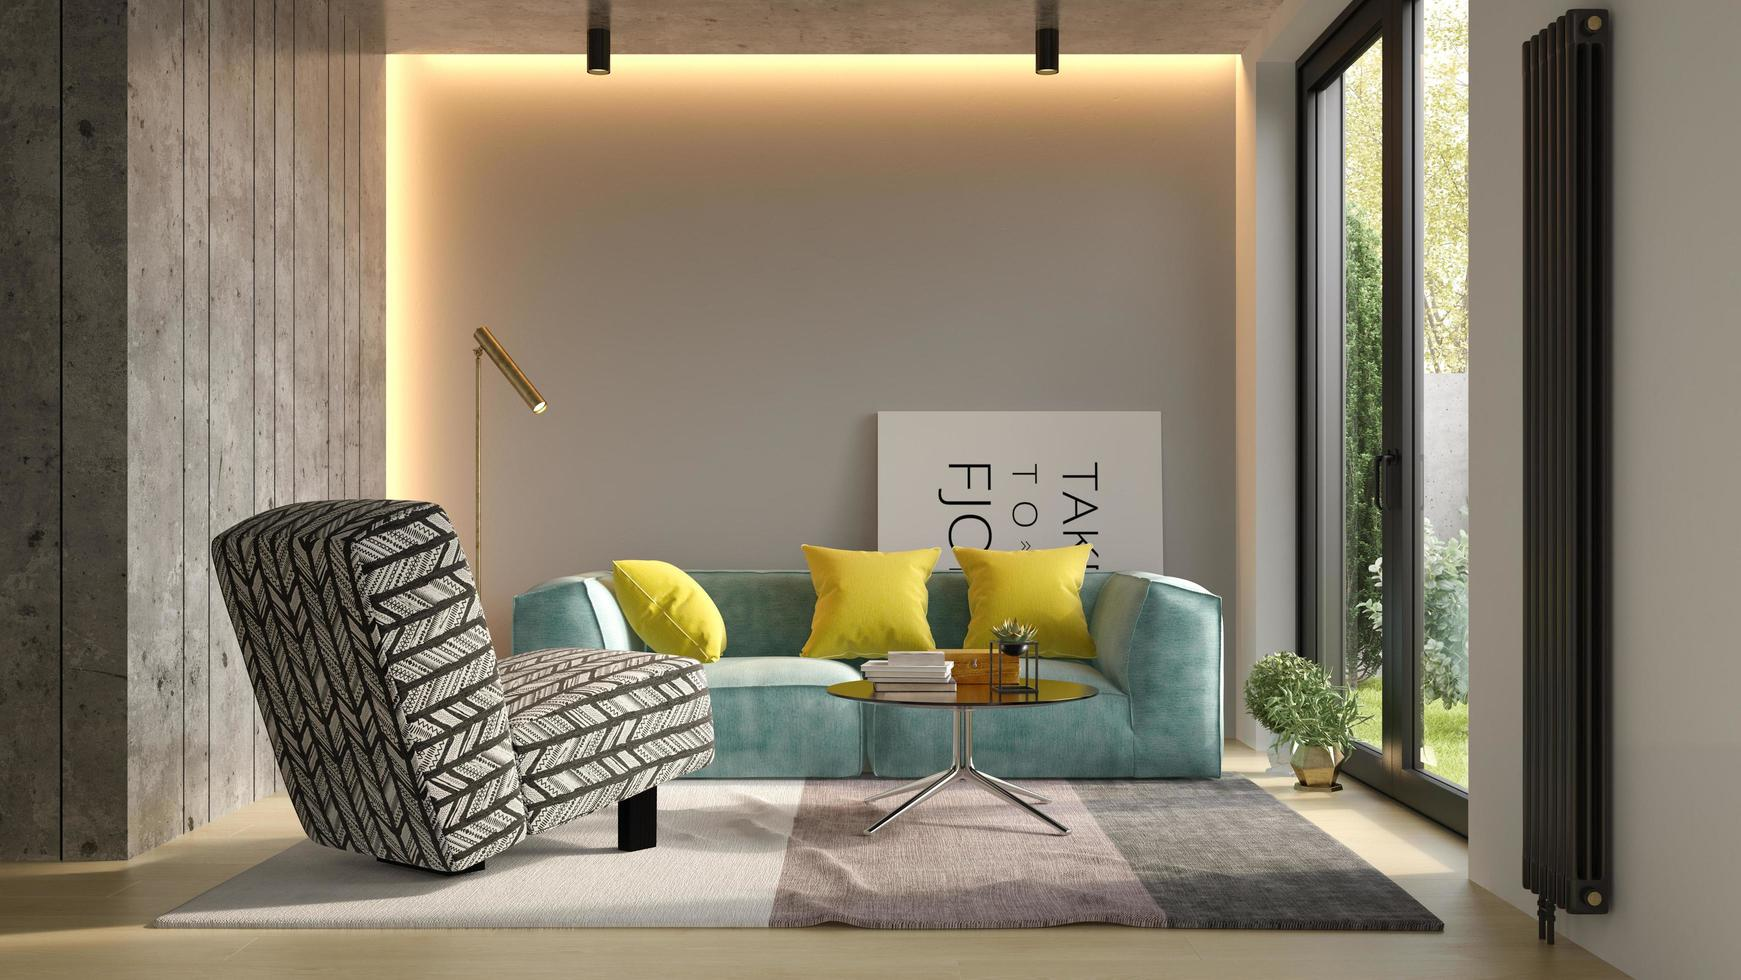 Interior design of a modern room in 3D illustration photo